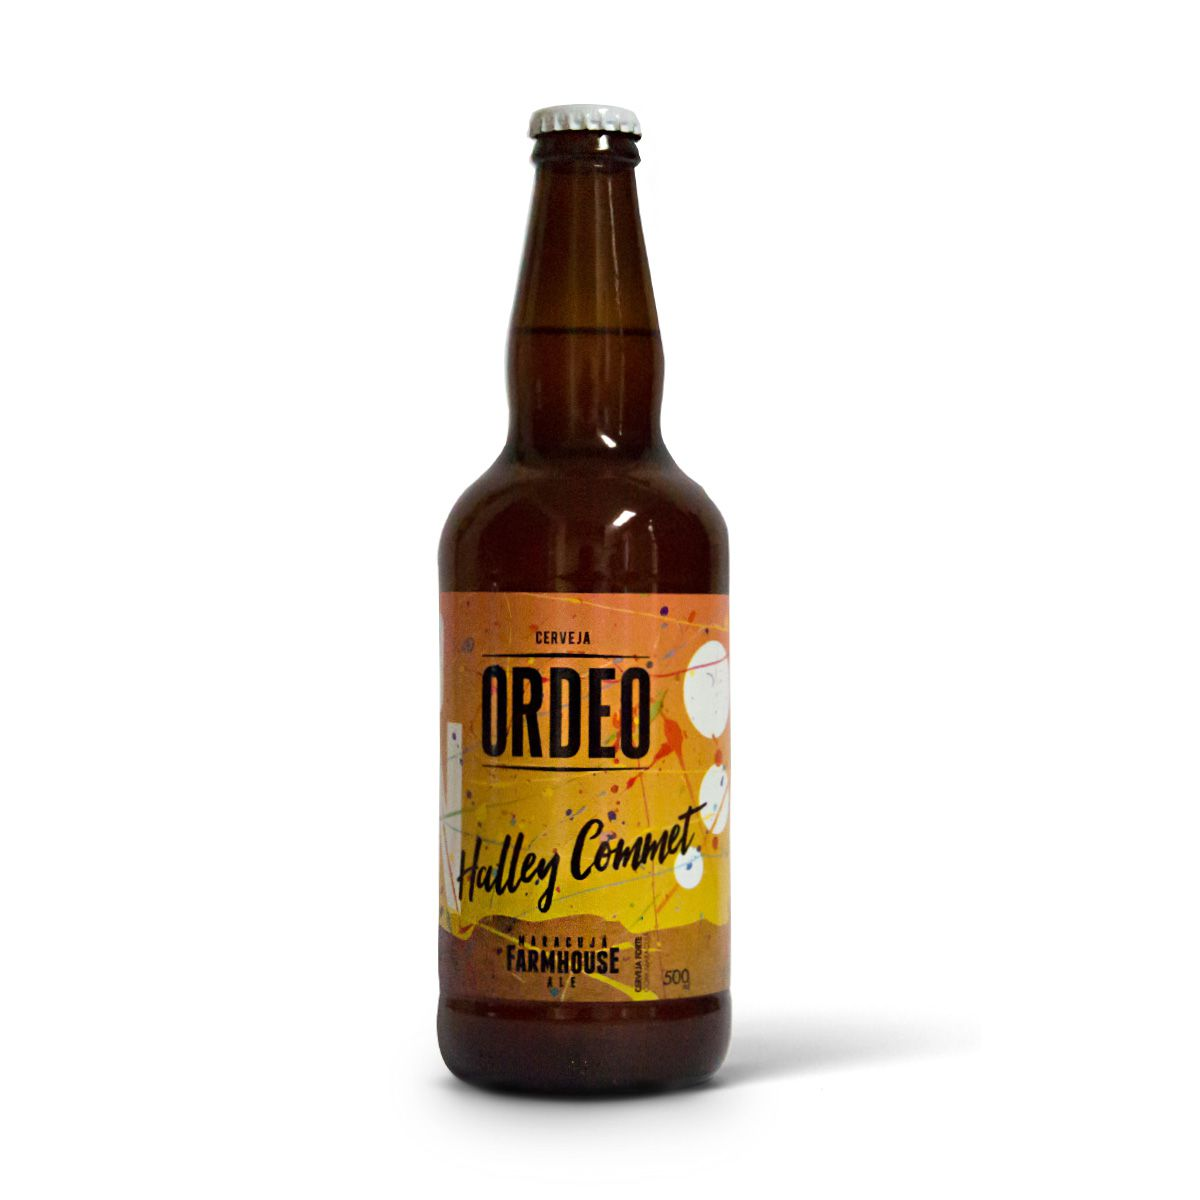 Ordeo Saison Halley Commet 500ml